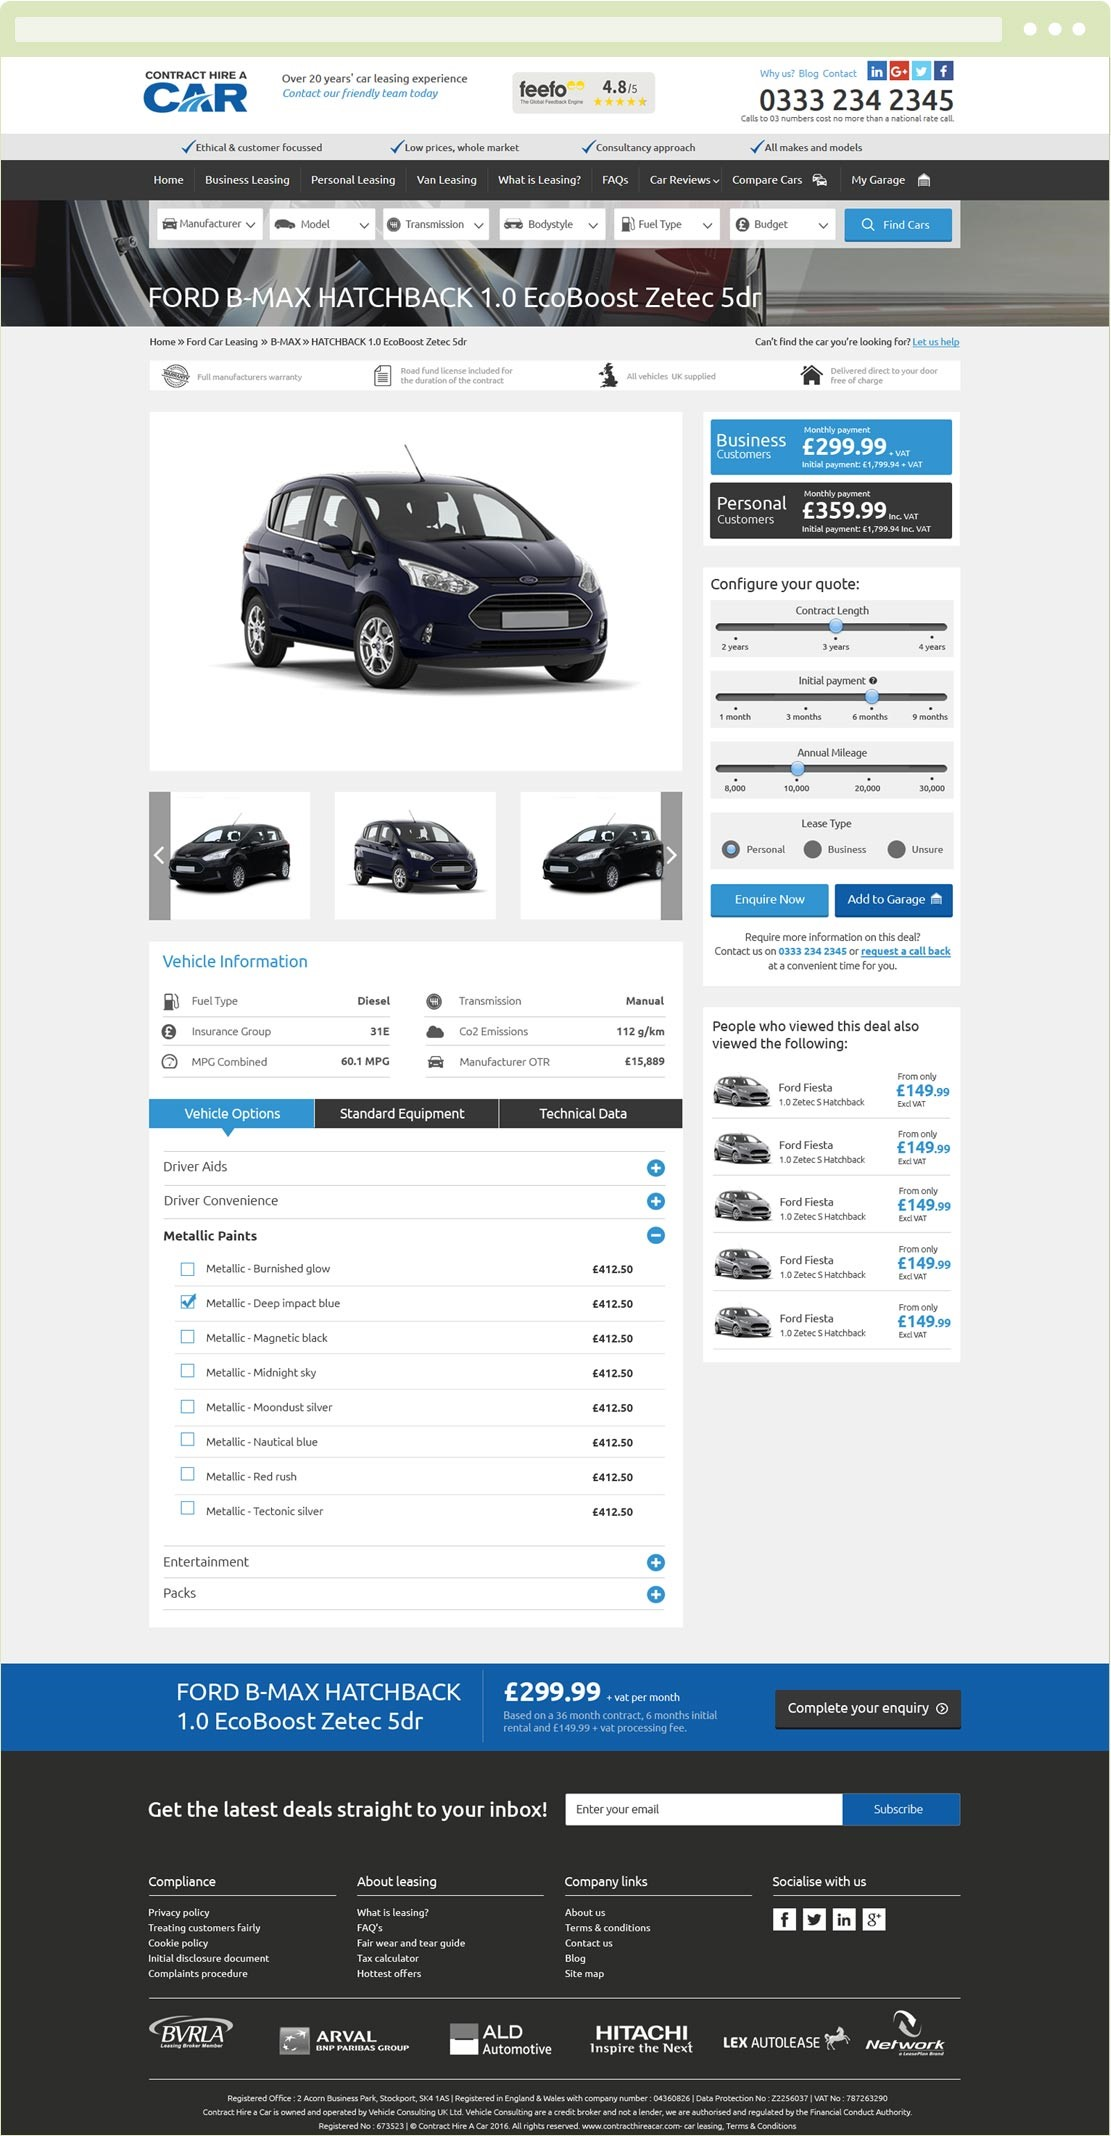 Contract Hire A Car